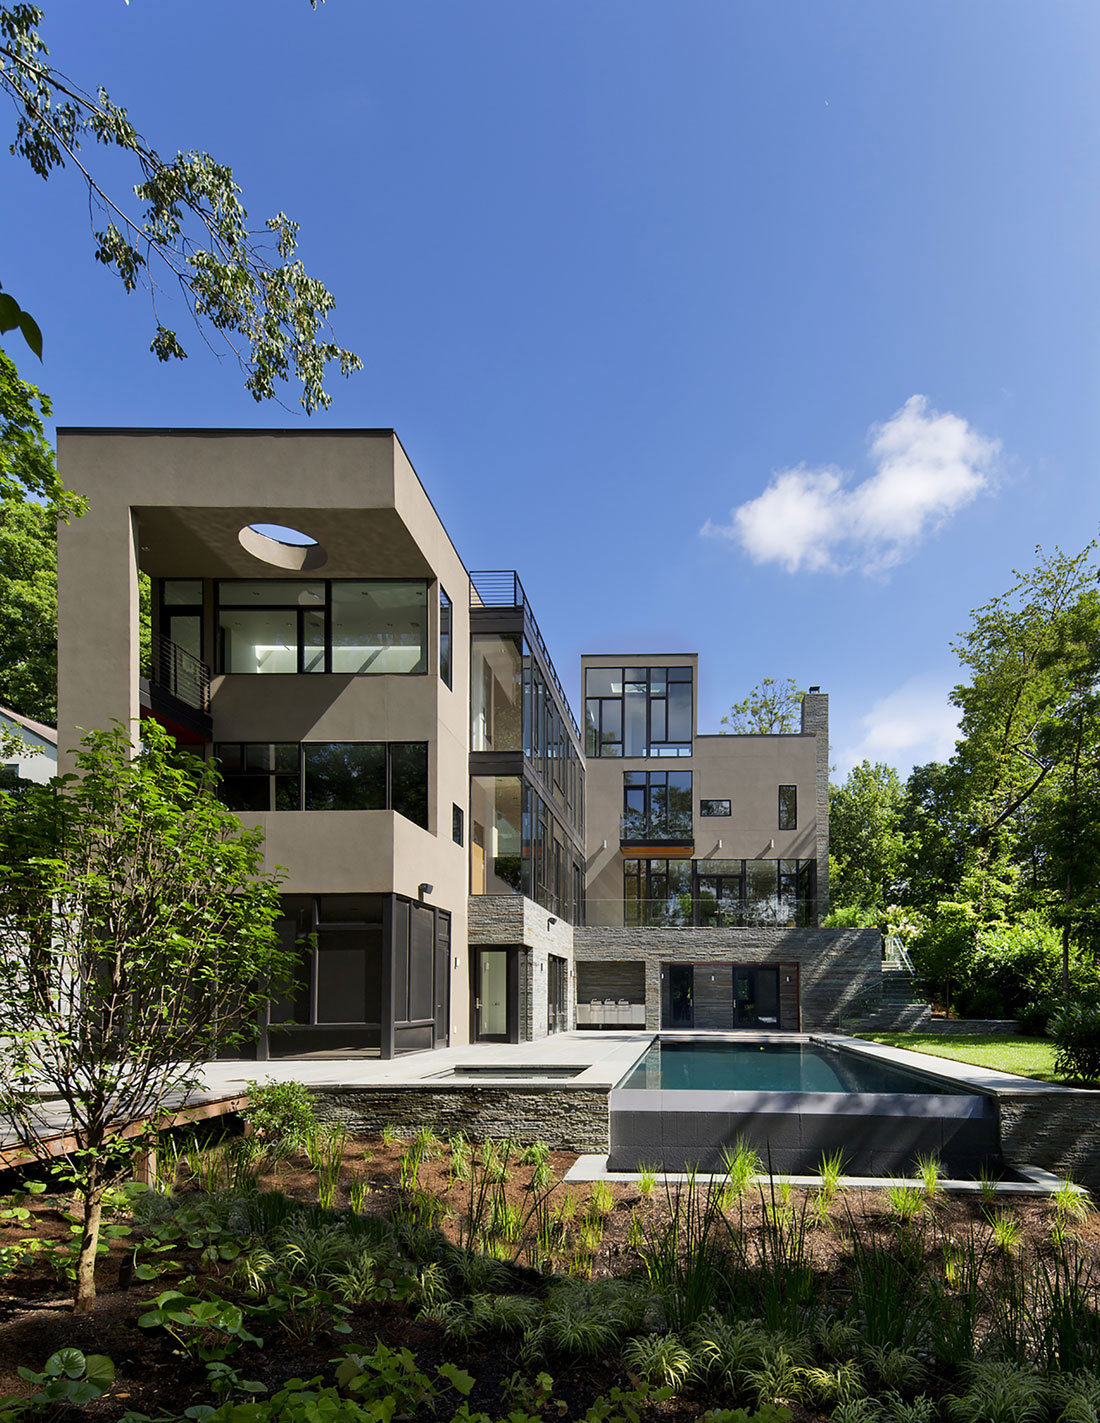 The-Brandywine-House-Is-An-Interior-Design-And-